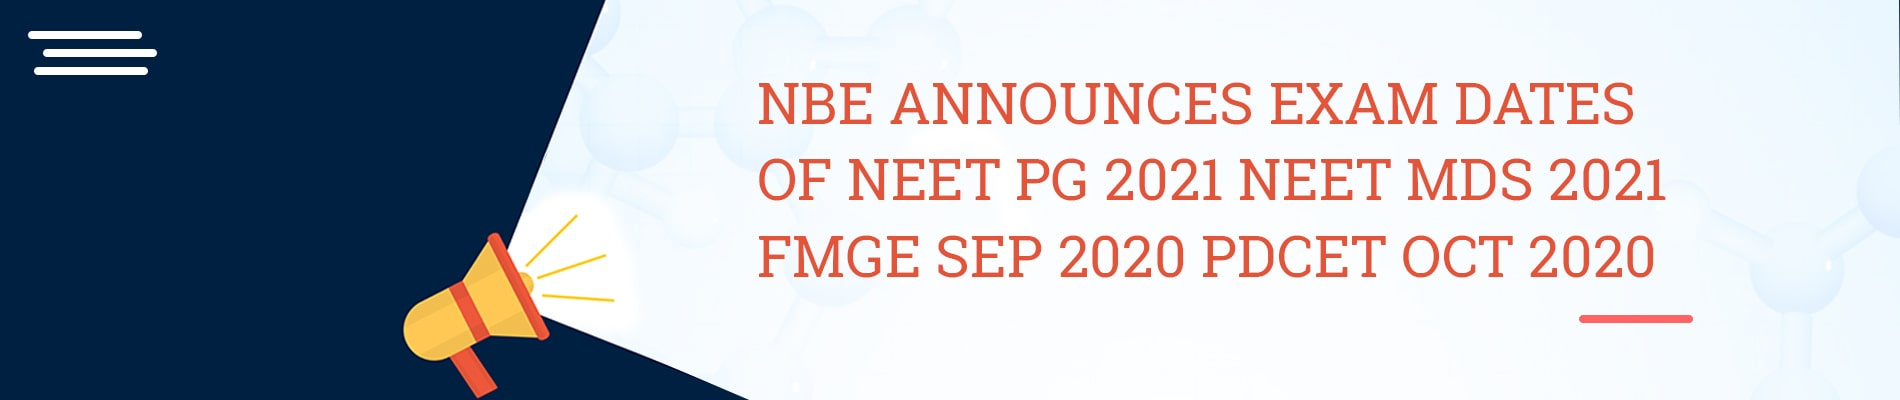 NBE ANNOUNCE EXAM DATES OF NEETPG 2021